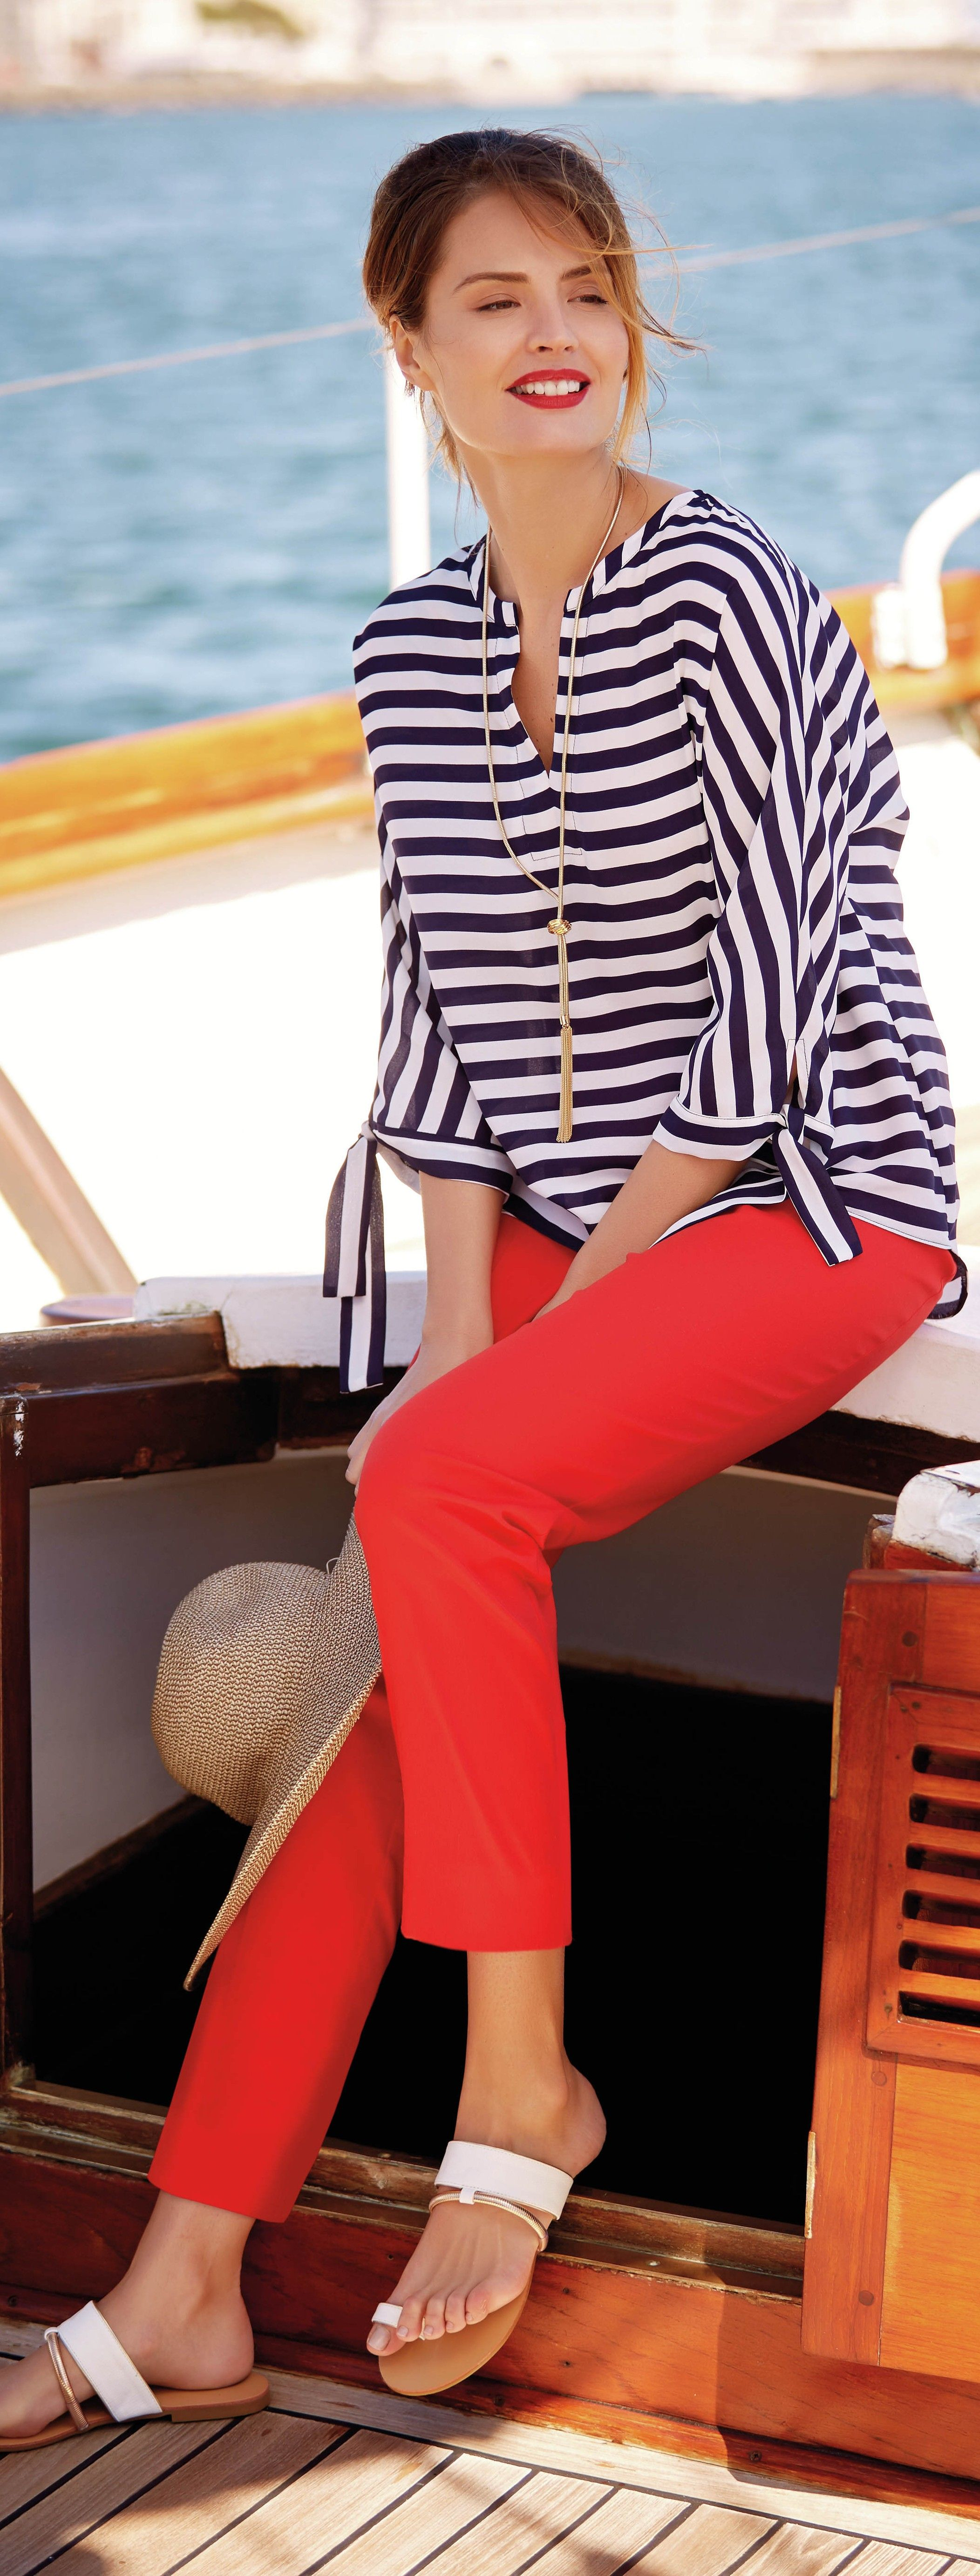 Cruise Wear For Women Over 50 Http Www Boomerinas Com